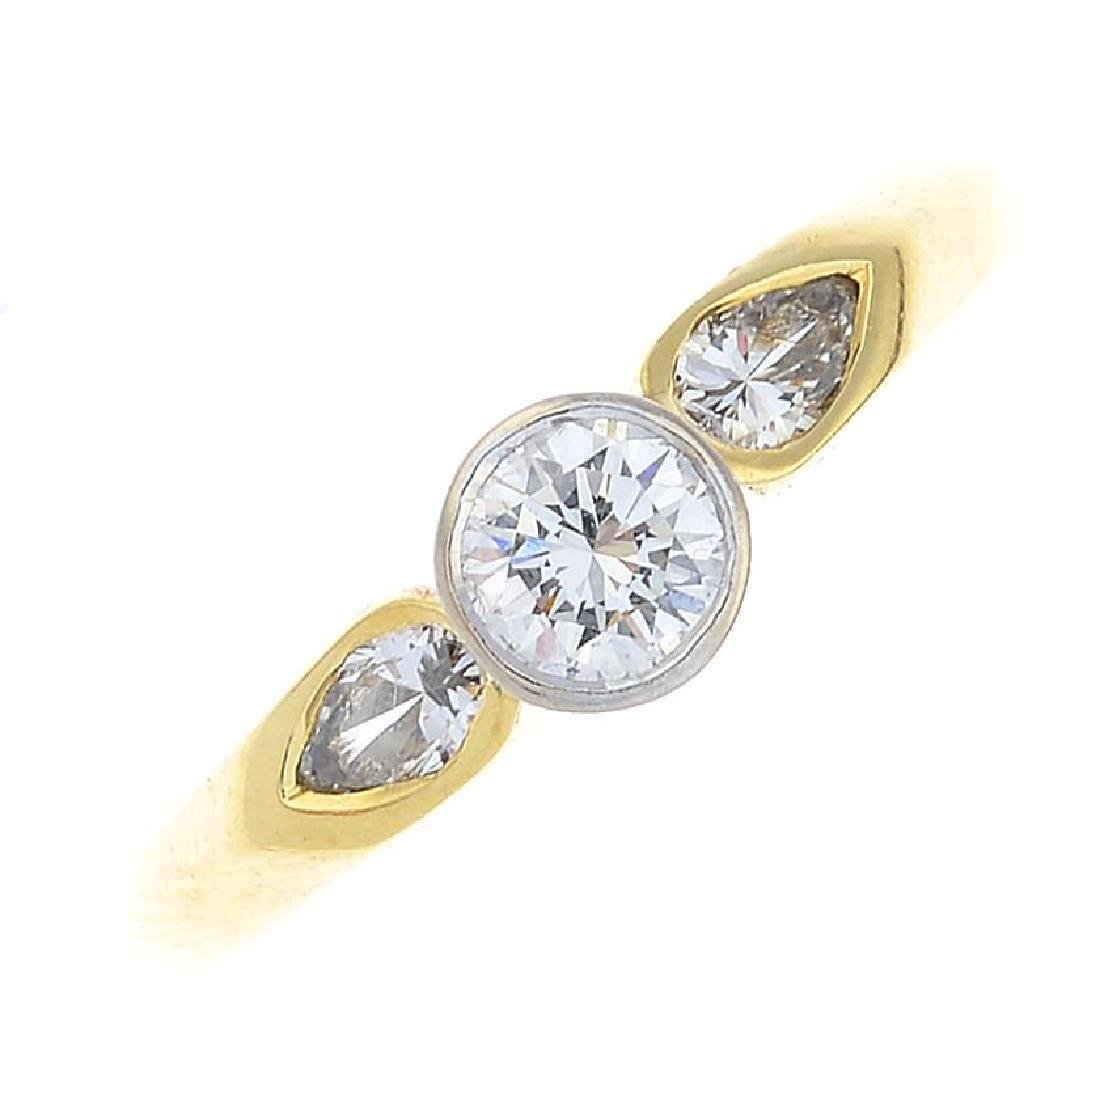 An 18ct gold diamond three-stone ring. The